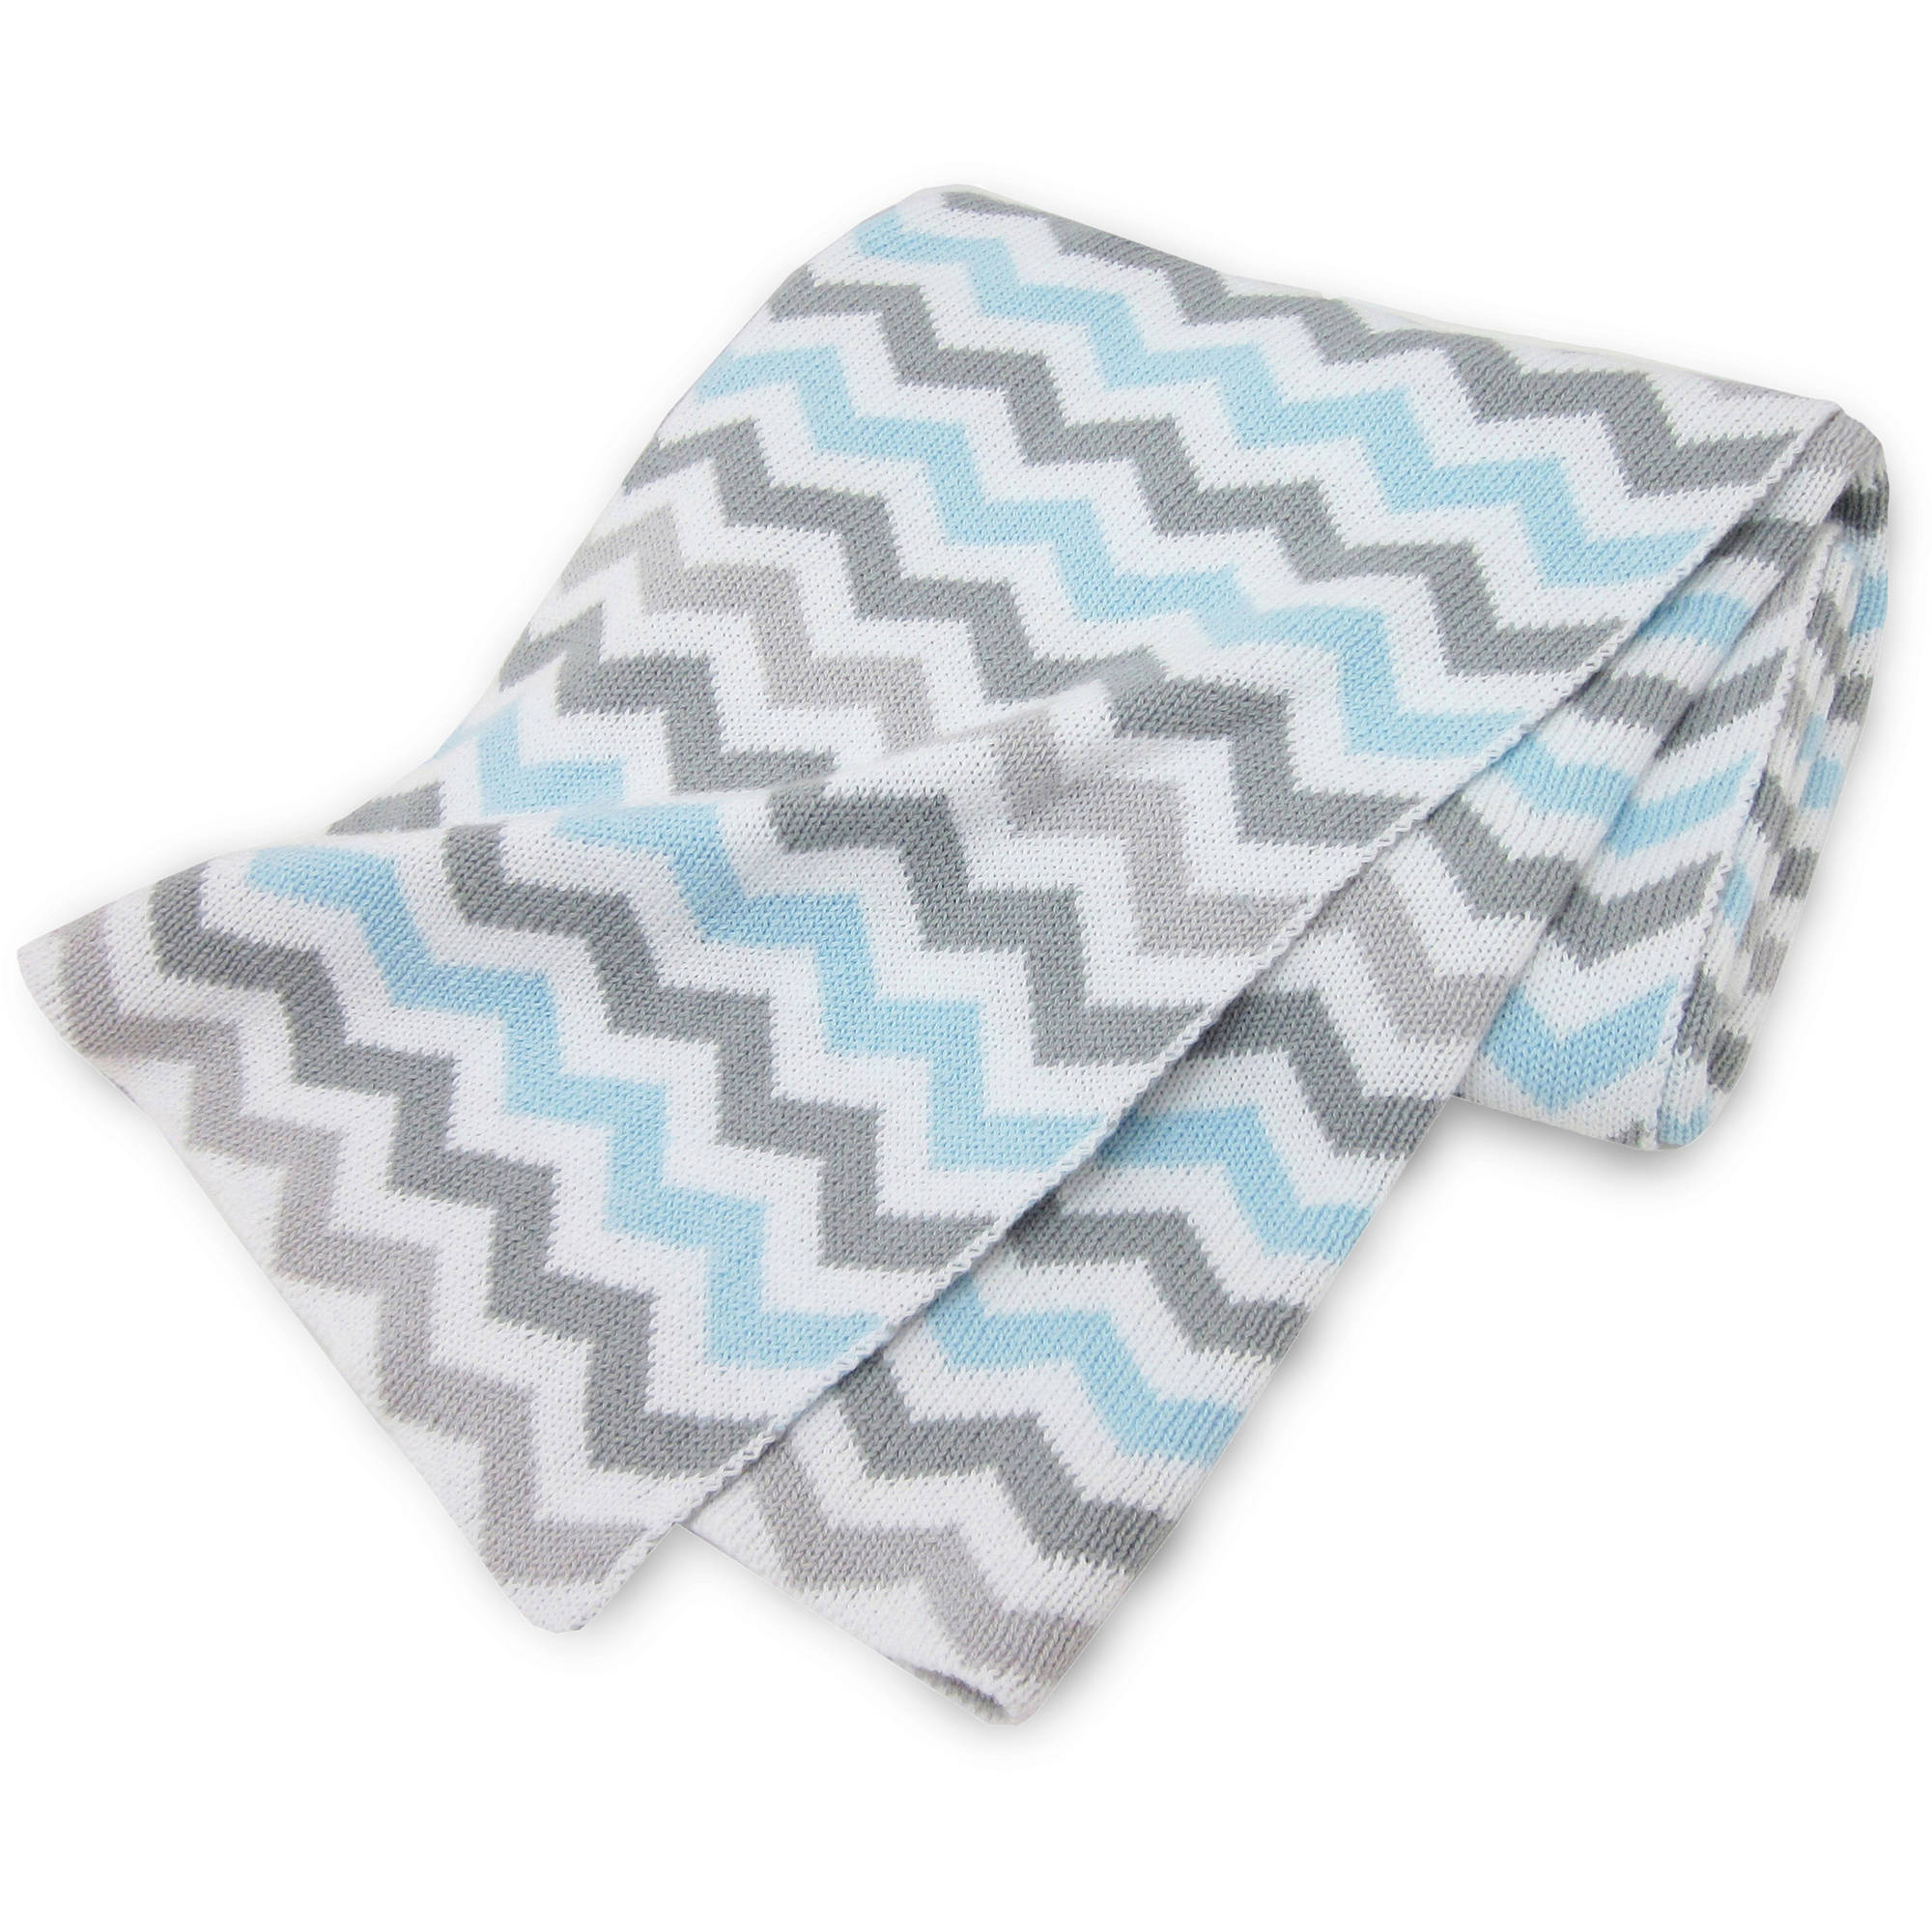 American Baby Company 100 Percent Cotton Sweater Knit Blanket, Blue and Gray Zigzag